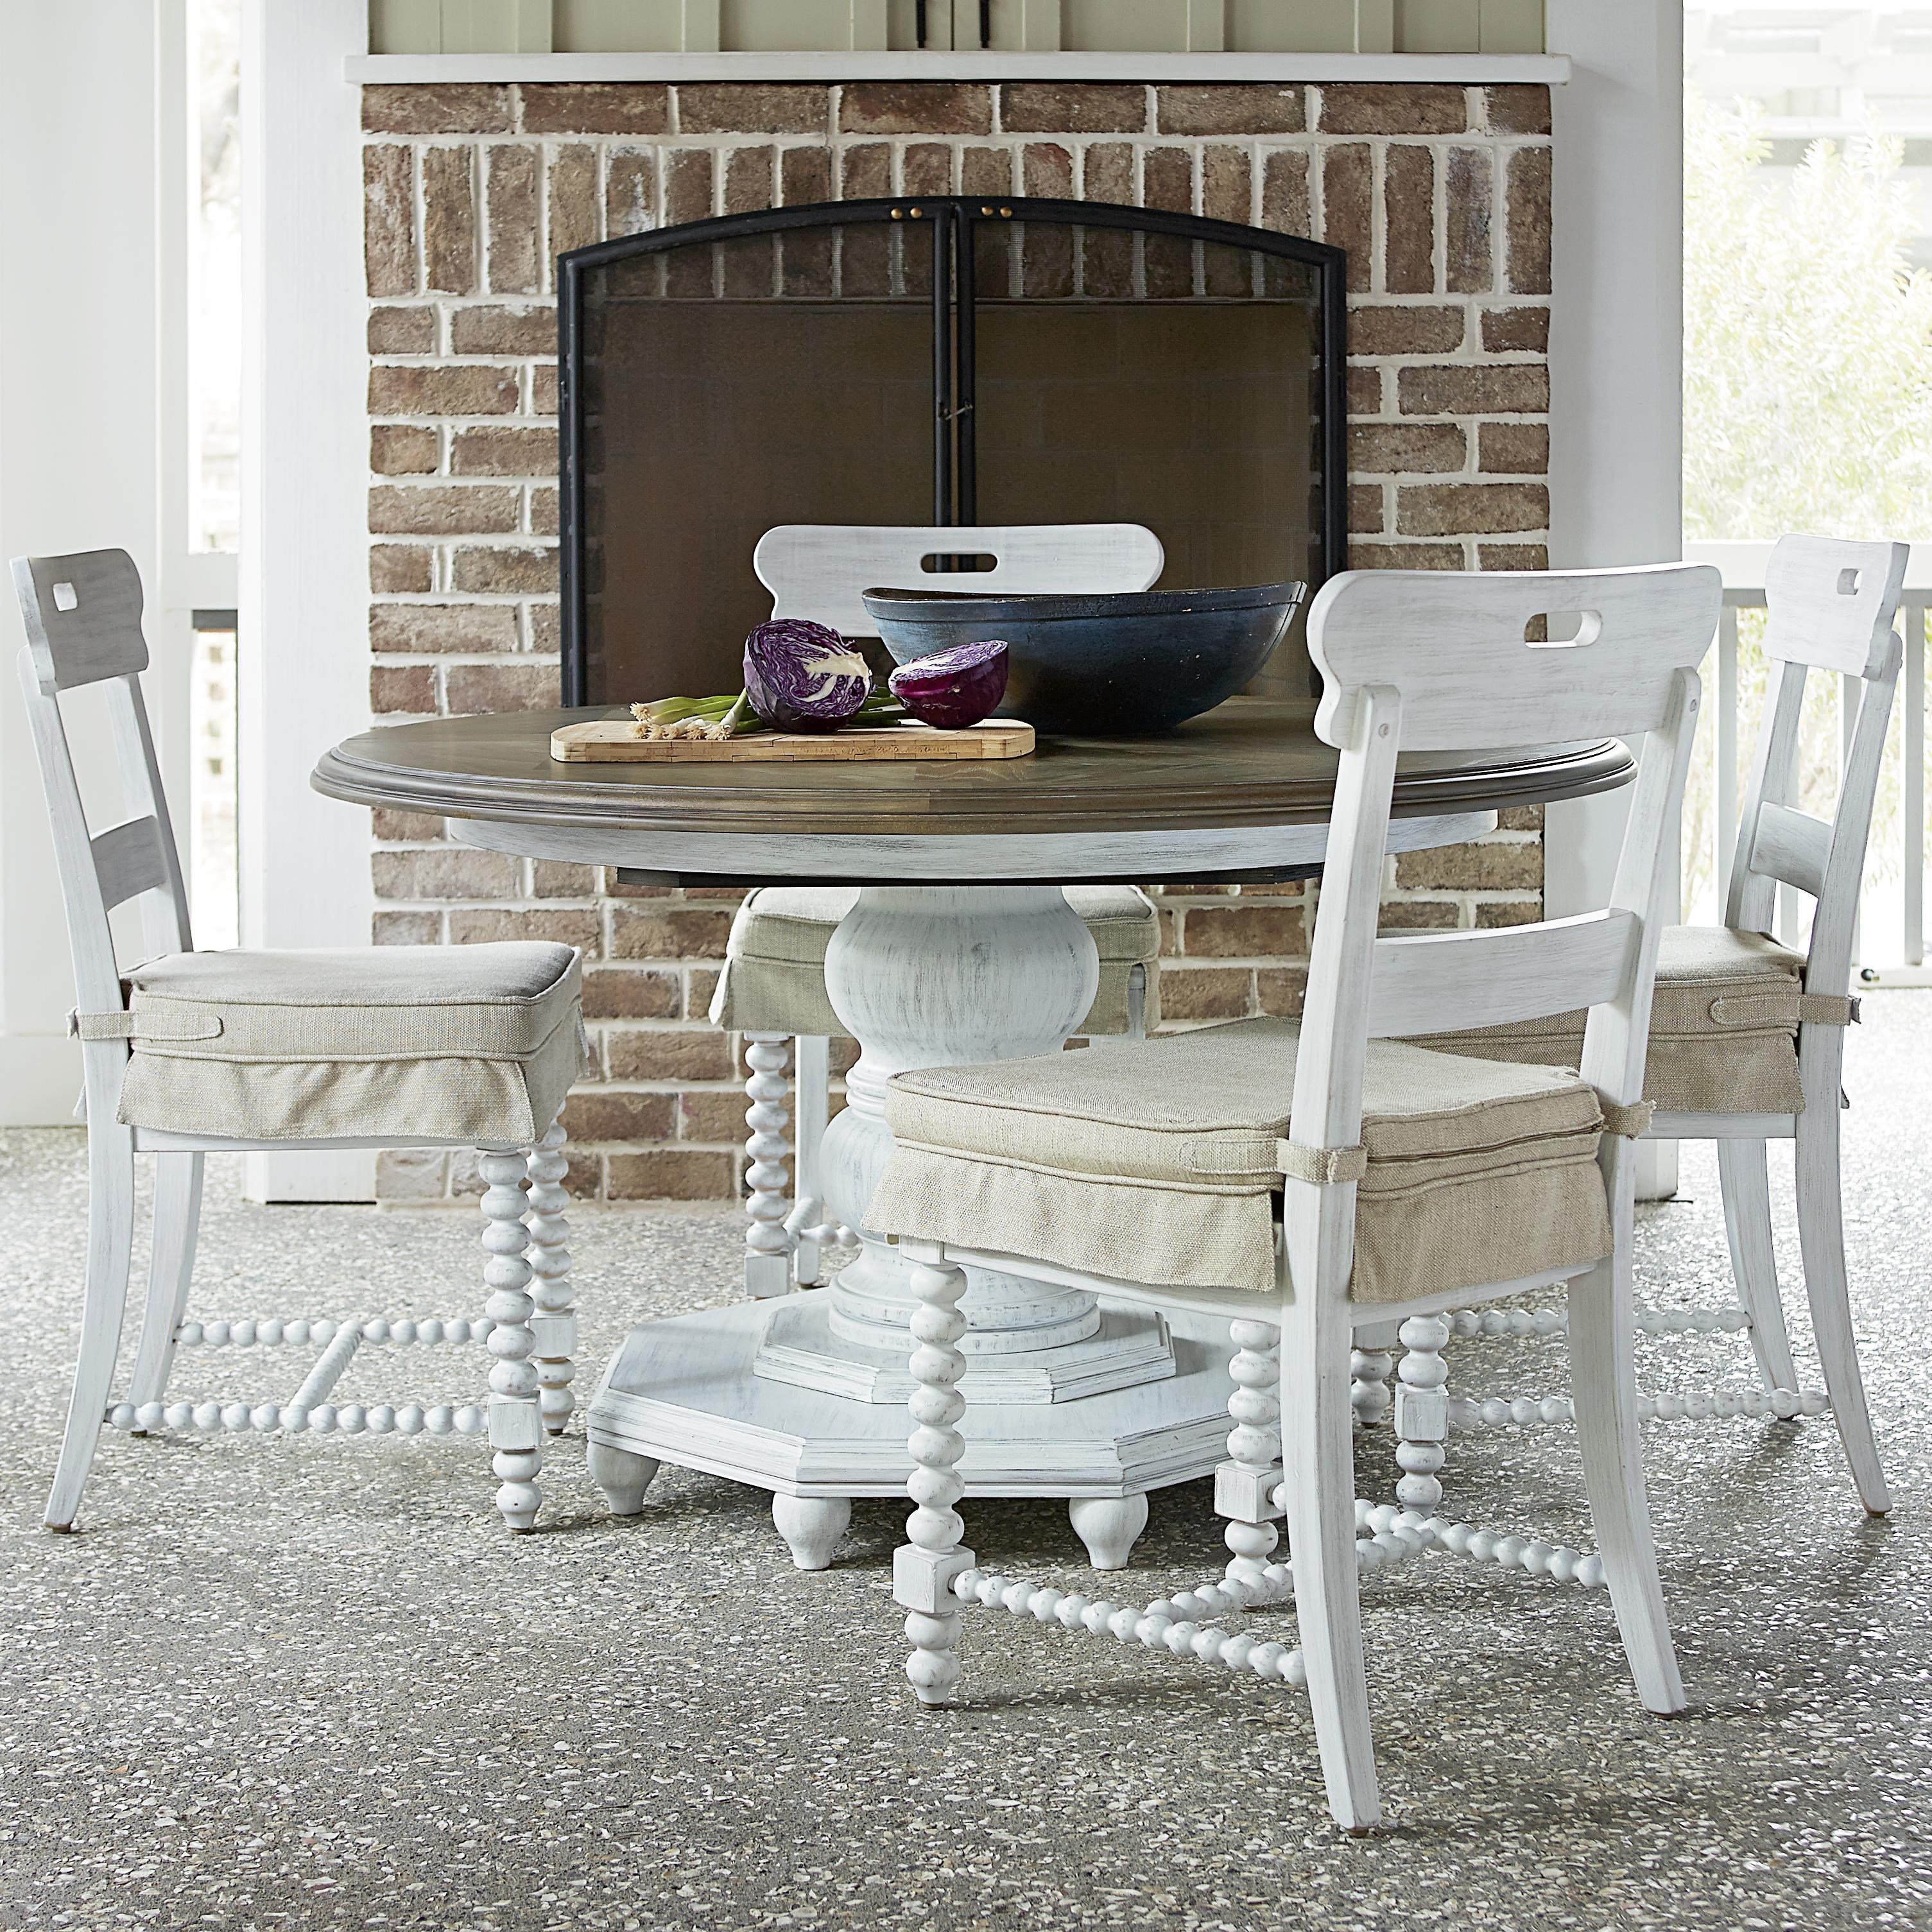 paula deen by universal dogwood 5 piece dining set with kitchen chairs - Paula Dean Furniture